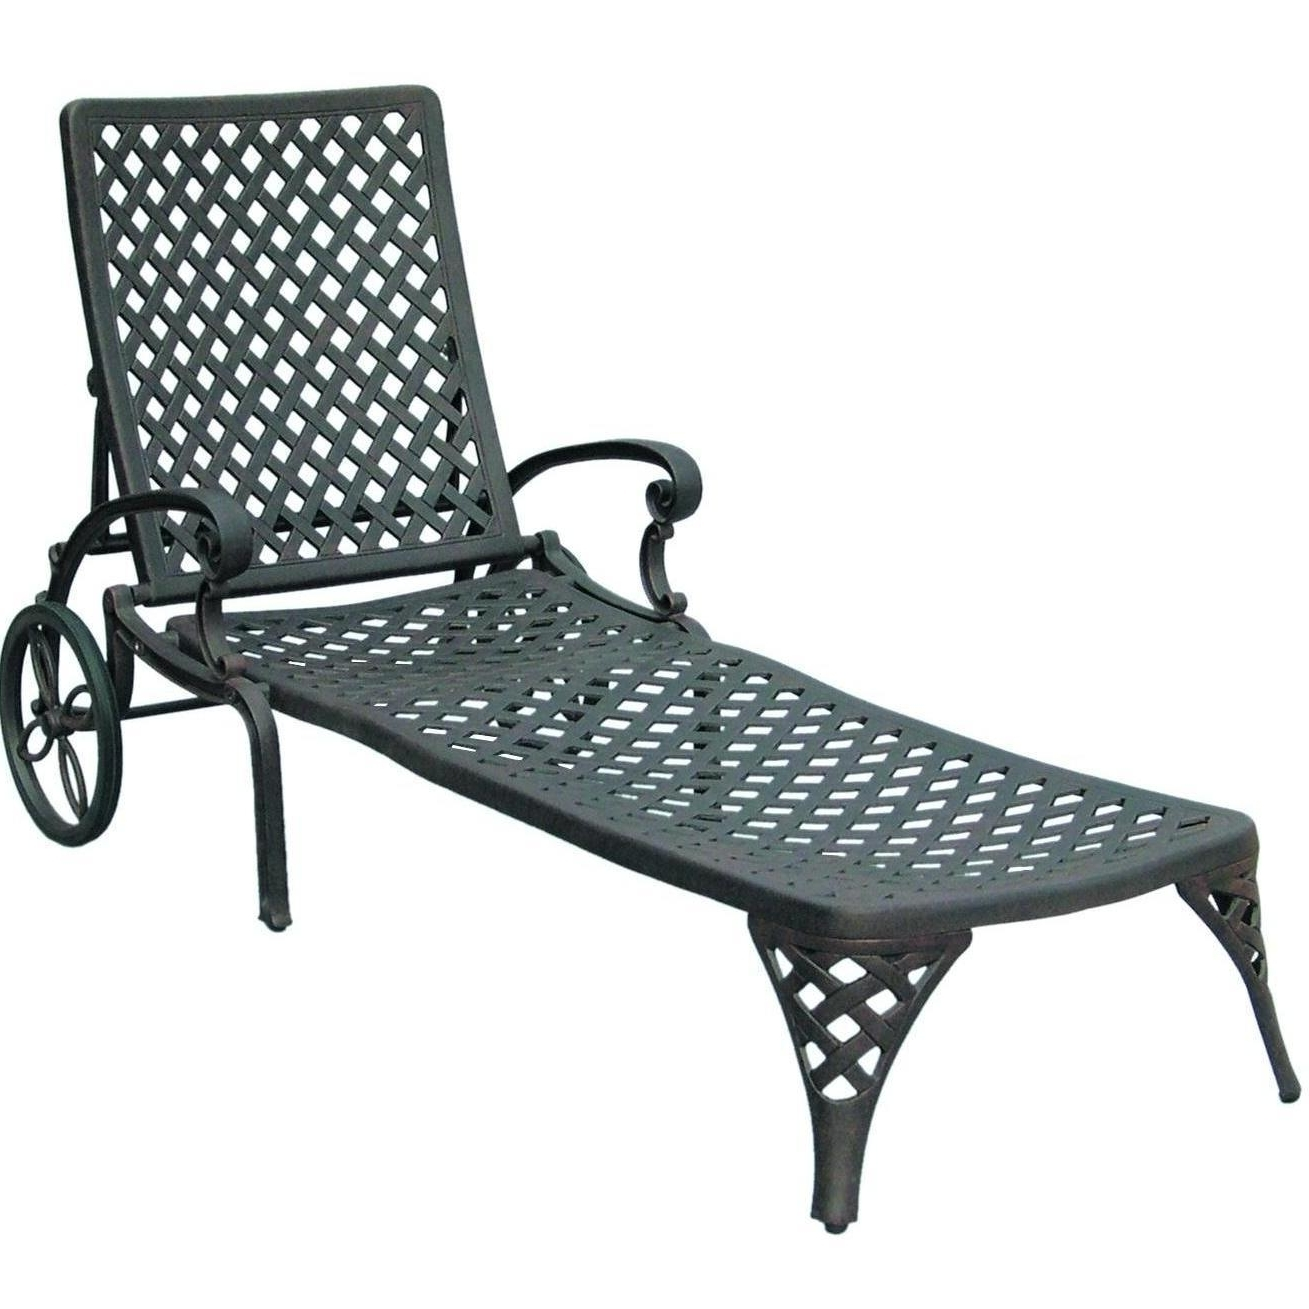 Darlee Nassau Cast Aluminum Patio Chaise Lounge : Ultimate Patio For Most Recent Wrought Iron Chaise Lounge Chairs (View 8 of 15)